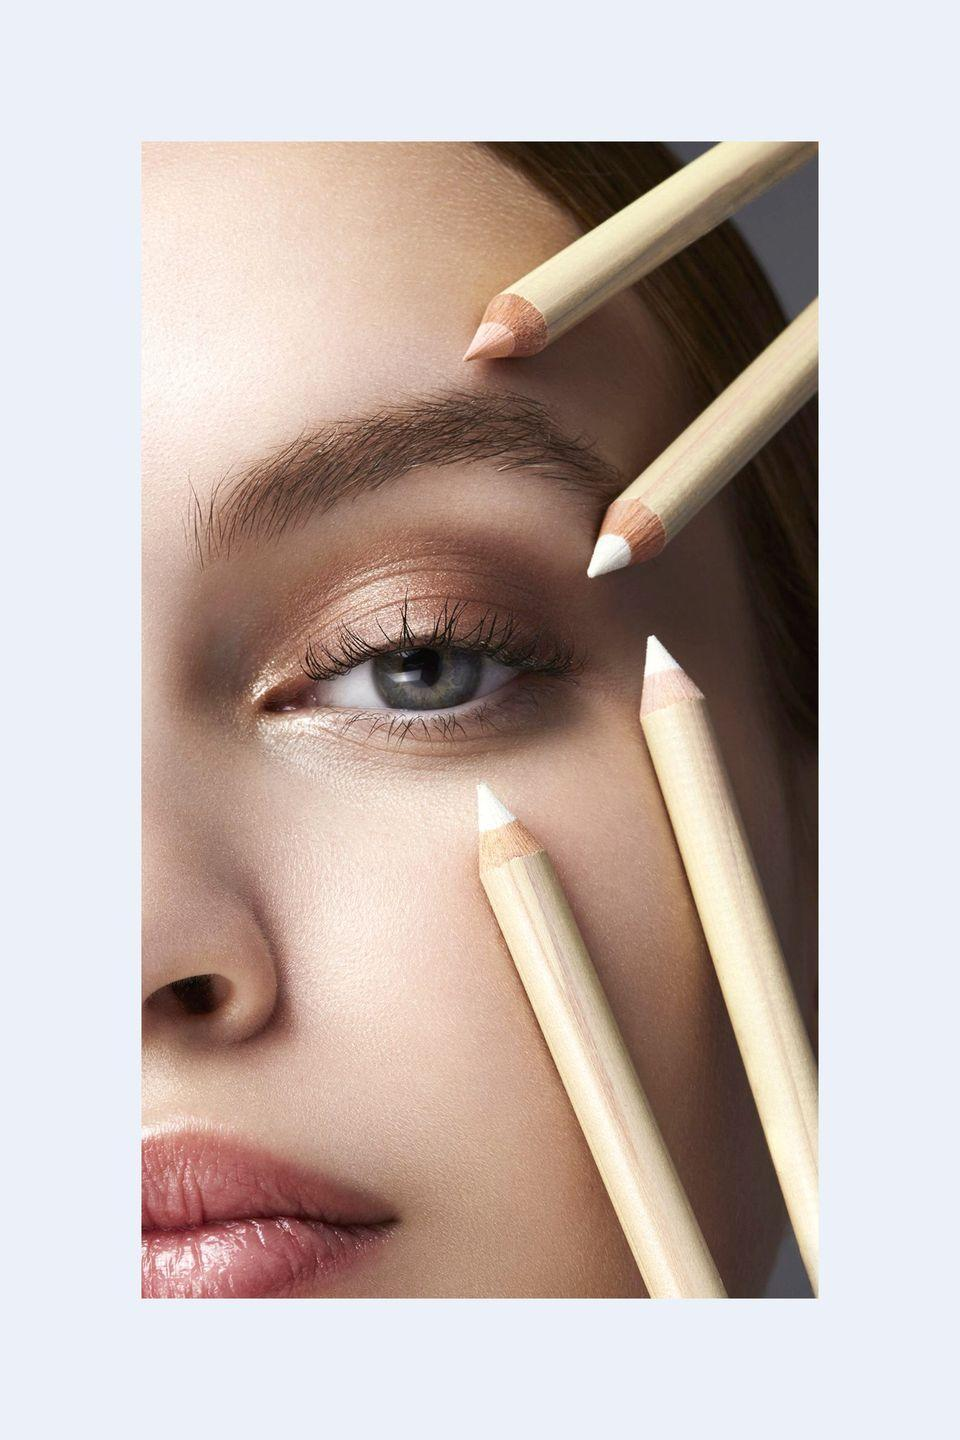 """<p> """"There are many brightening eyeliners out there, but I always <strong>suggest and prefer creamier warm tones over stark white.</strong> It's more flattering.""""—<em>Jillian Dempsey, celebrity makeup artist and founder of Jillian Dempsey </em></p>"""